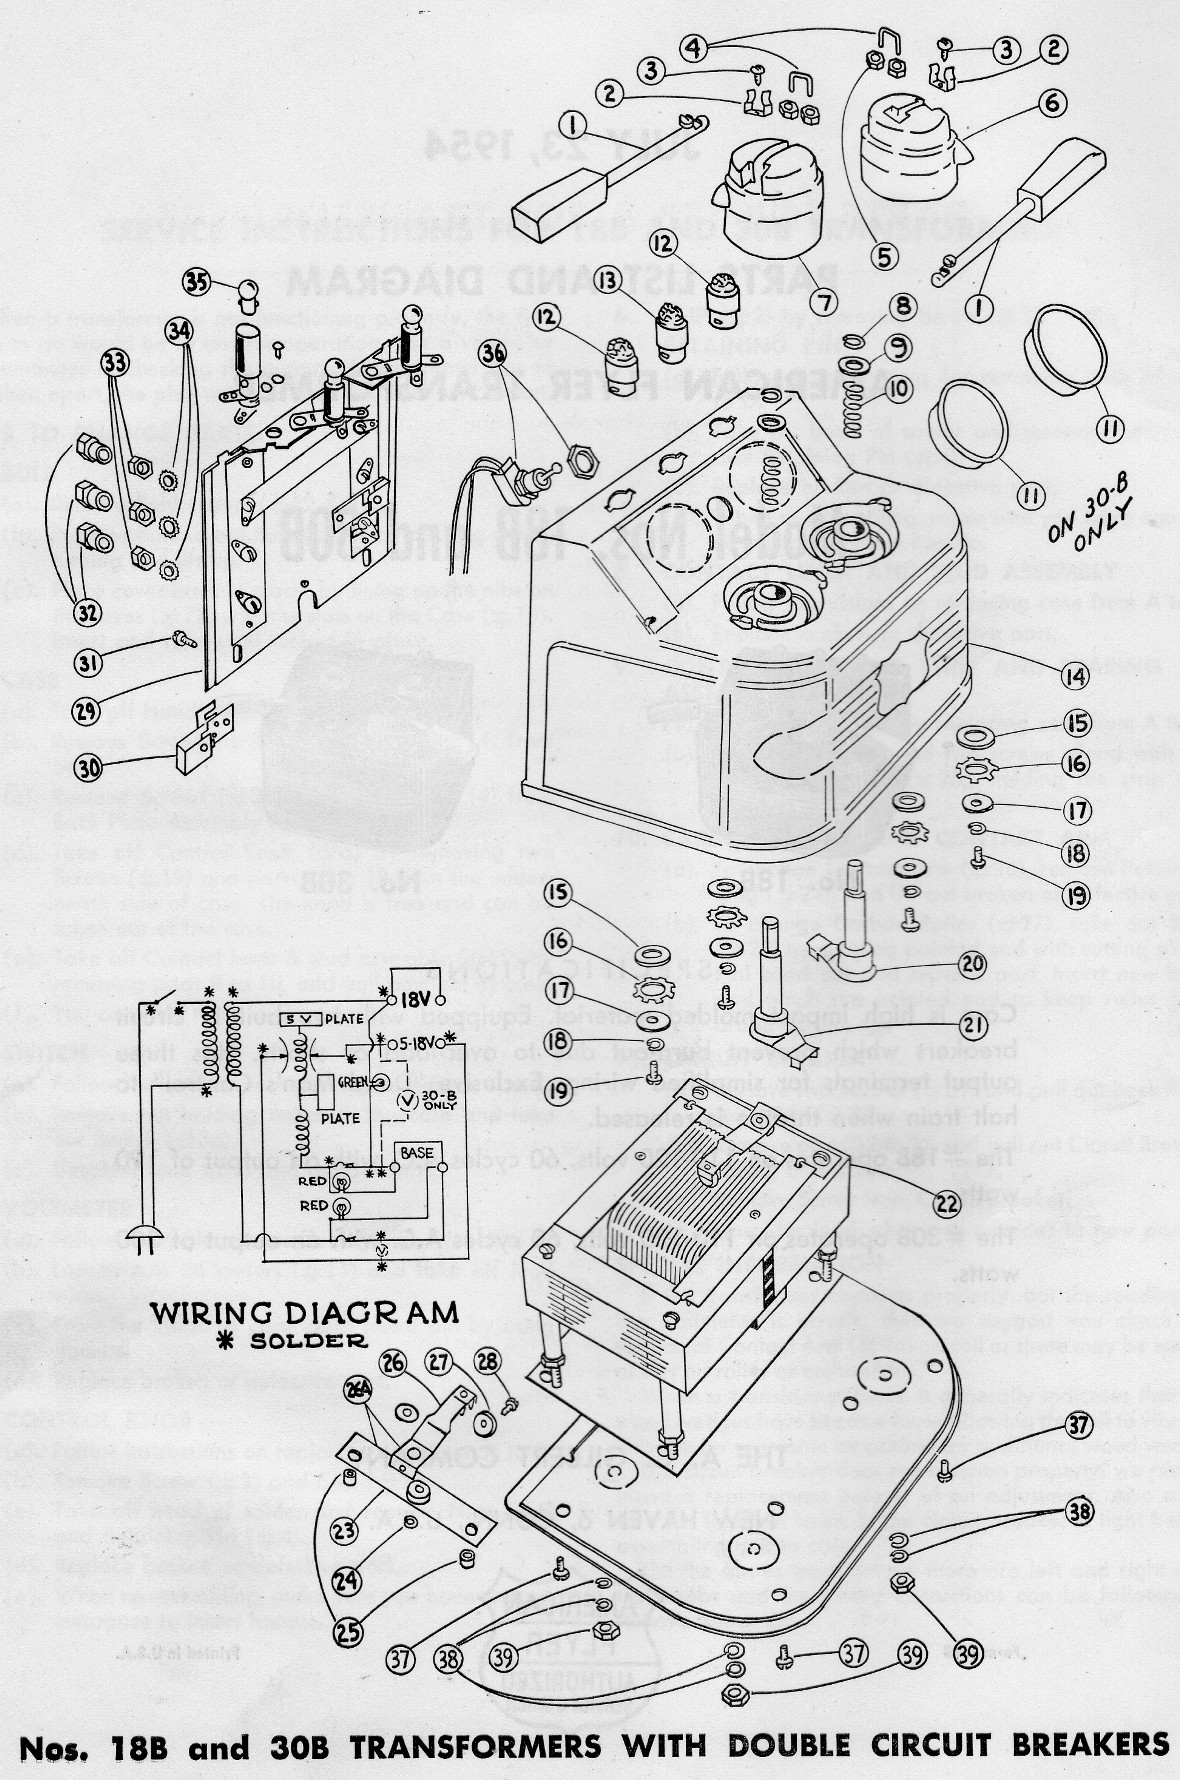 american flyer transformer 18b  u0026 30b parts list and diagram